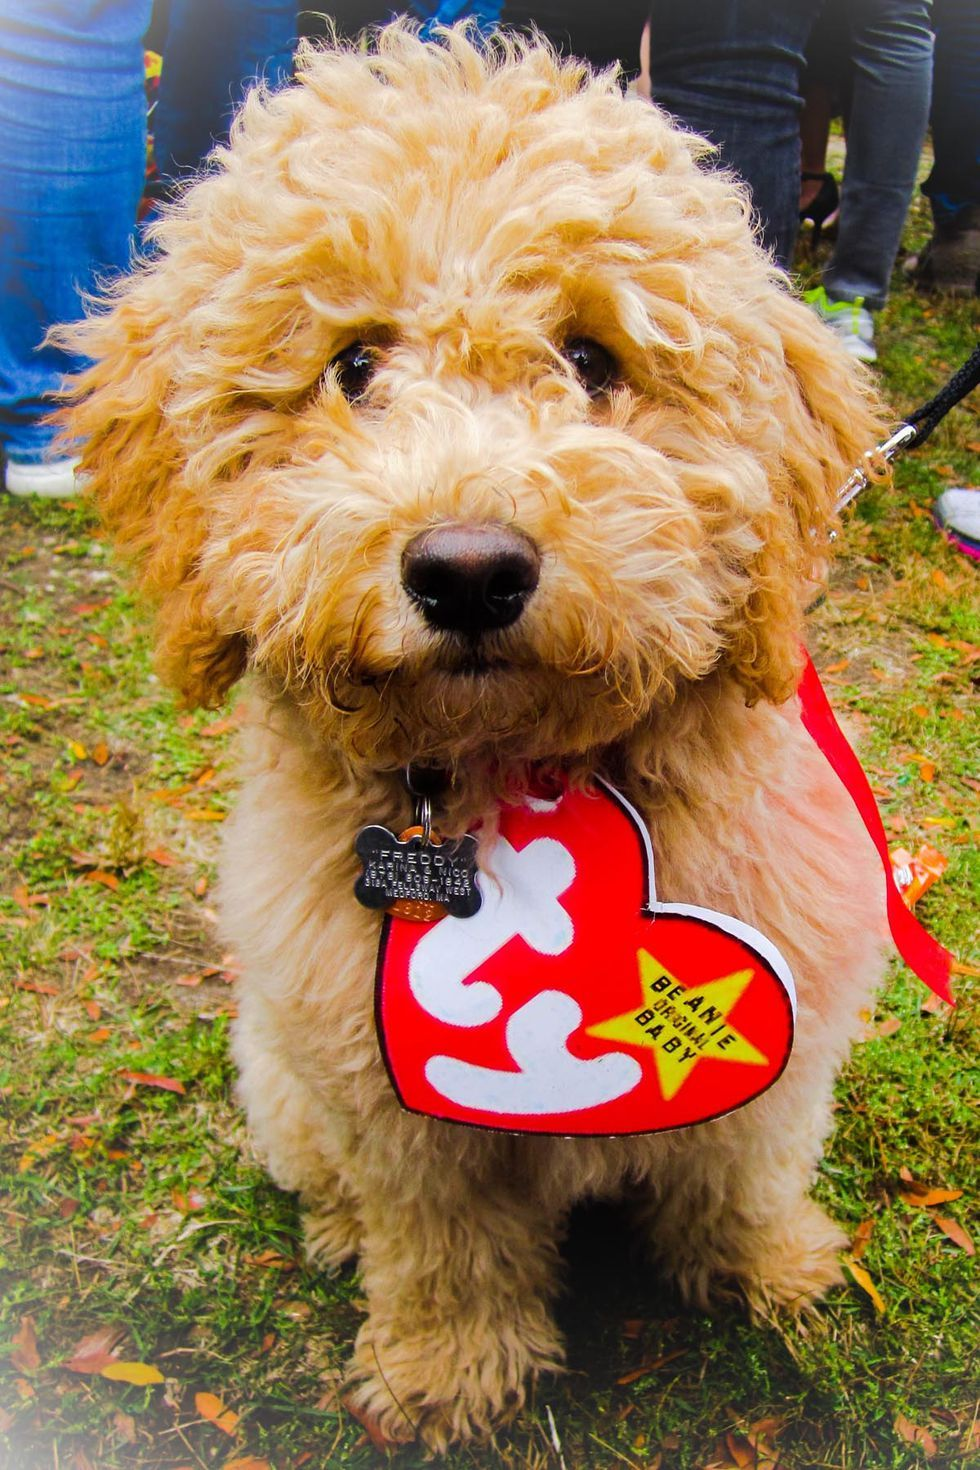 57 Dog Costumes That Get Your Pup In On the Halloween Fun #costumes